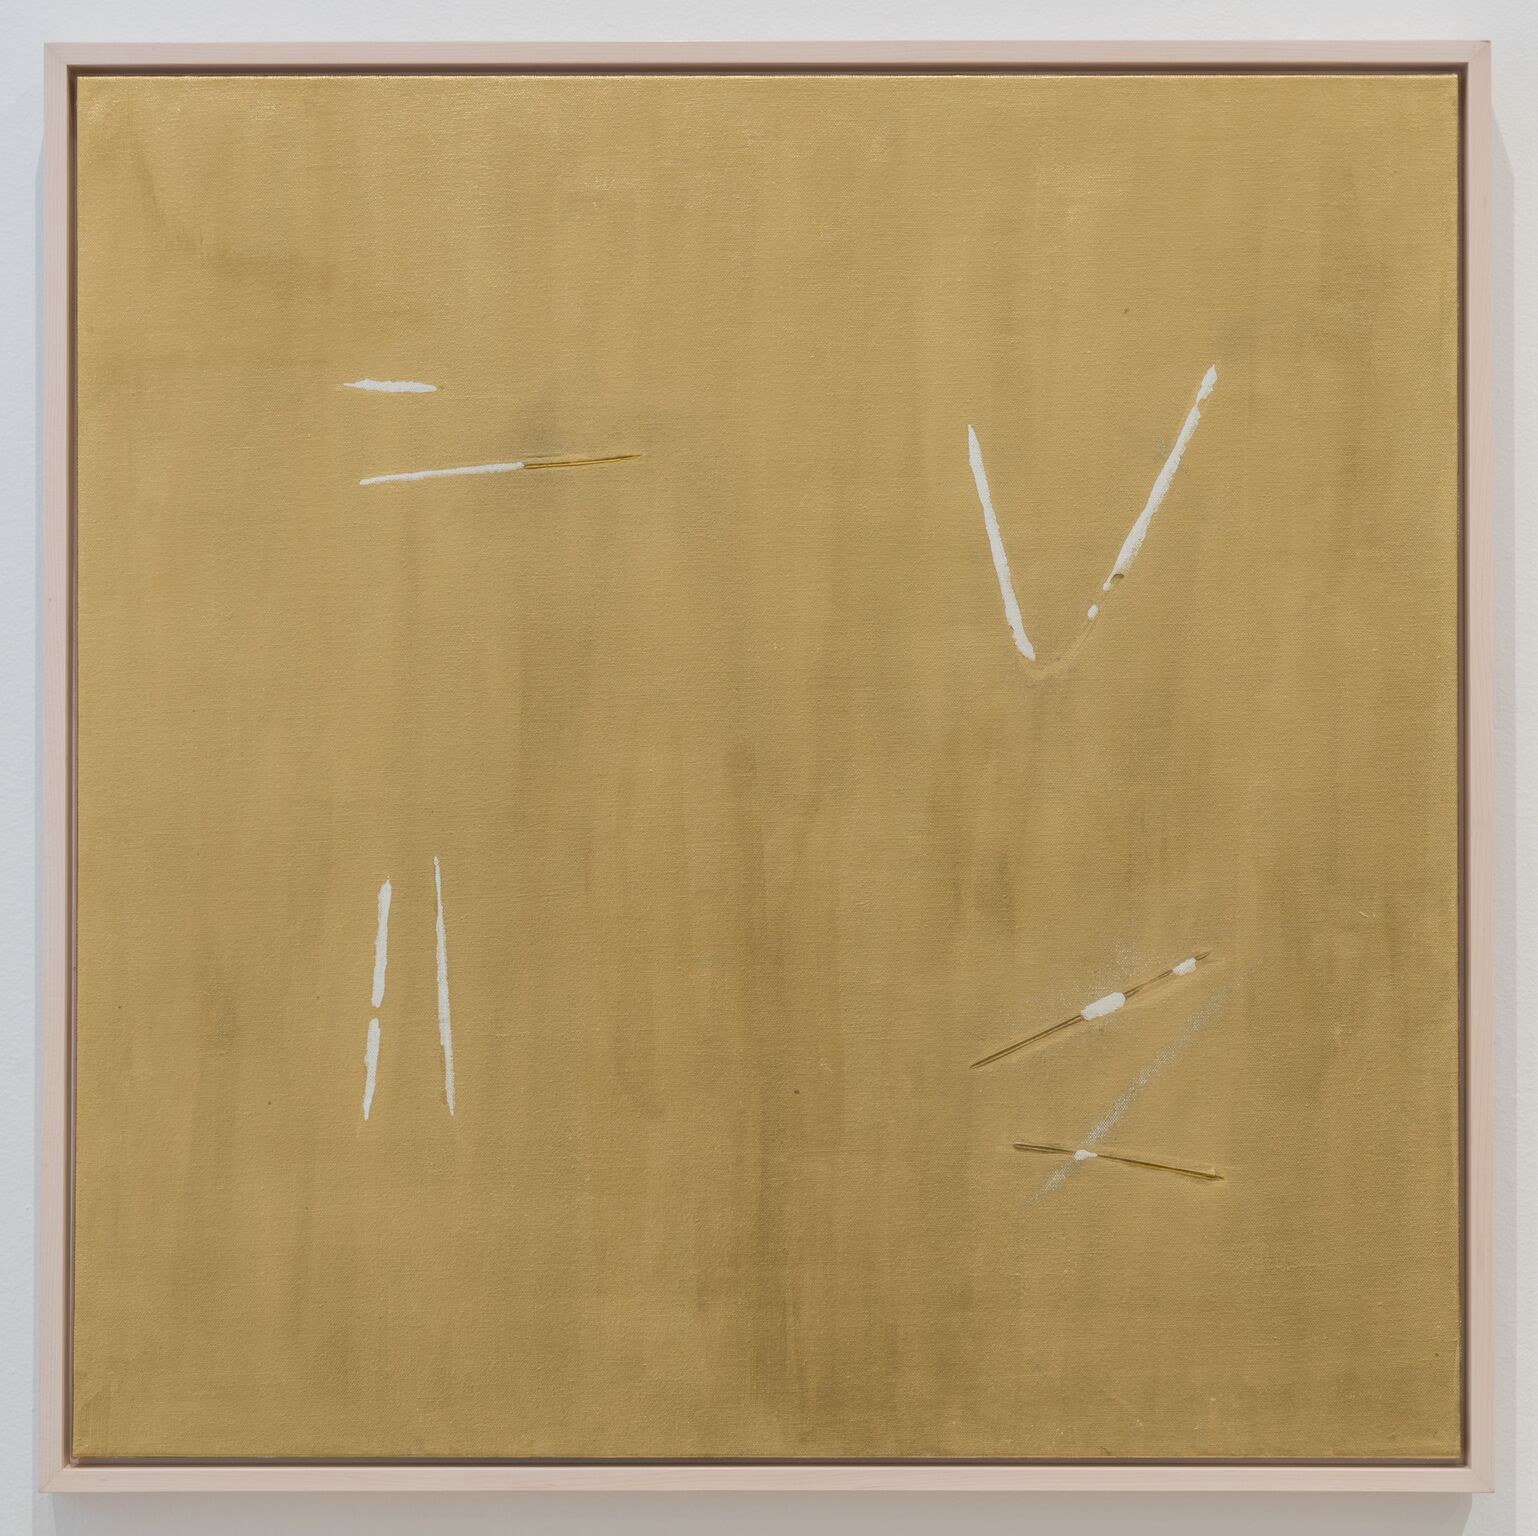 Alejandro Diaz  Repeal (Hangers) , 2017 14K gold pigment and acrylic medium on canvas 30 x 30 in (76.2 x 76.2 cm)